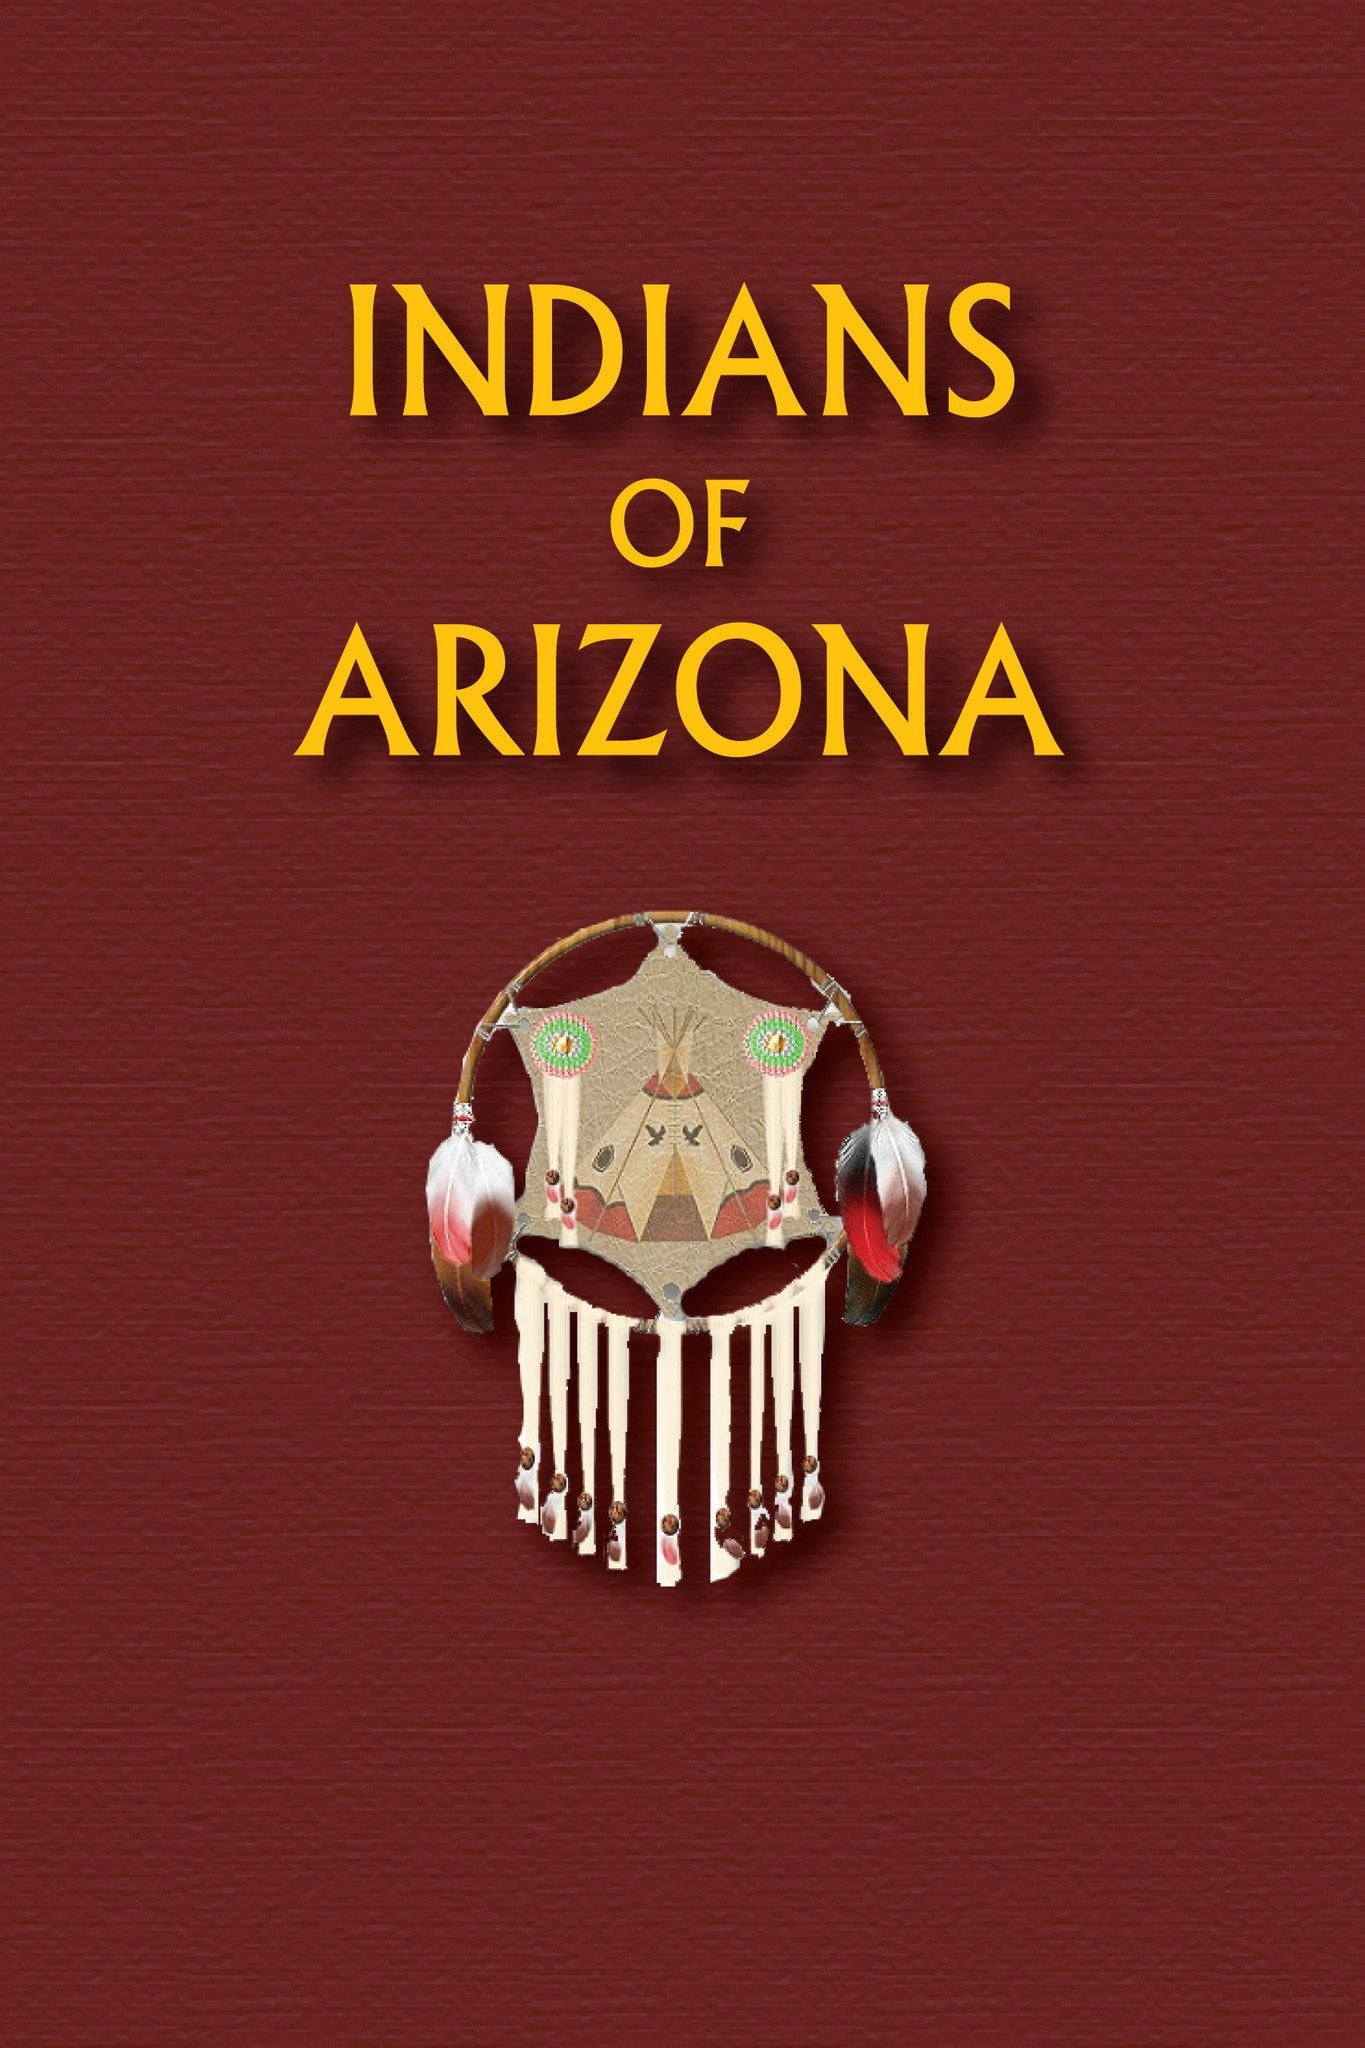 Indians of Arizona